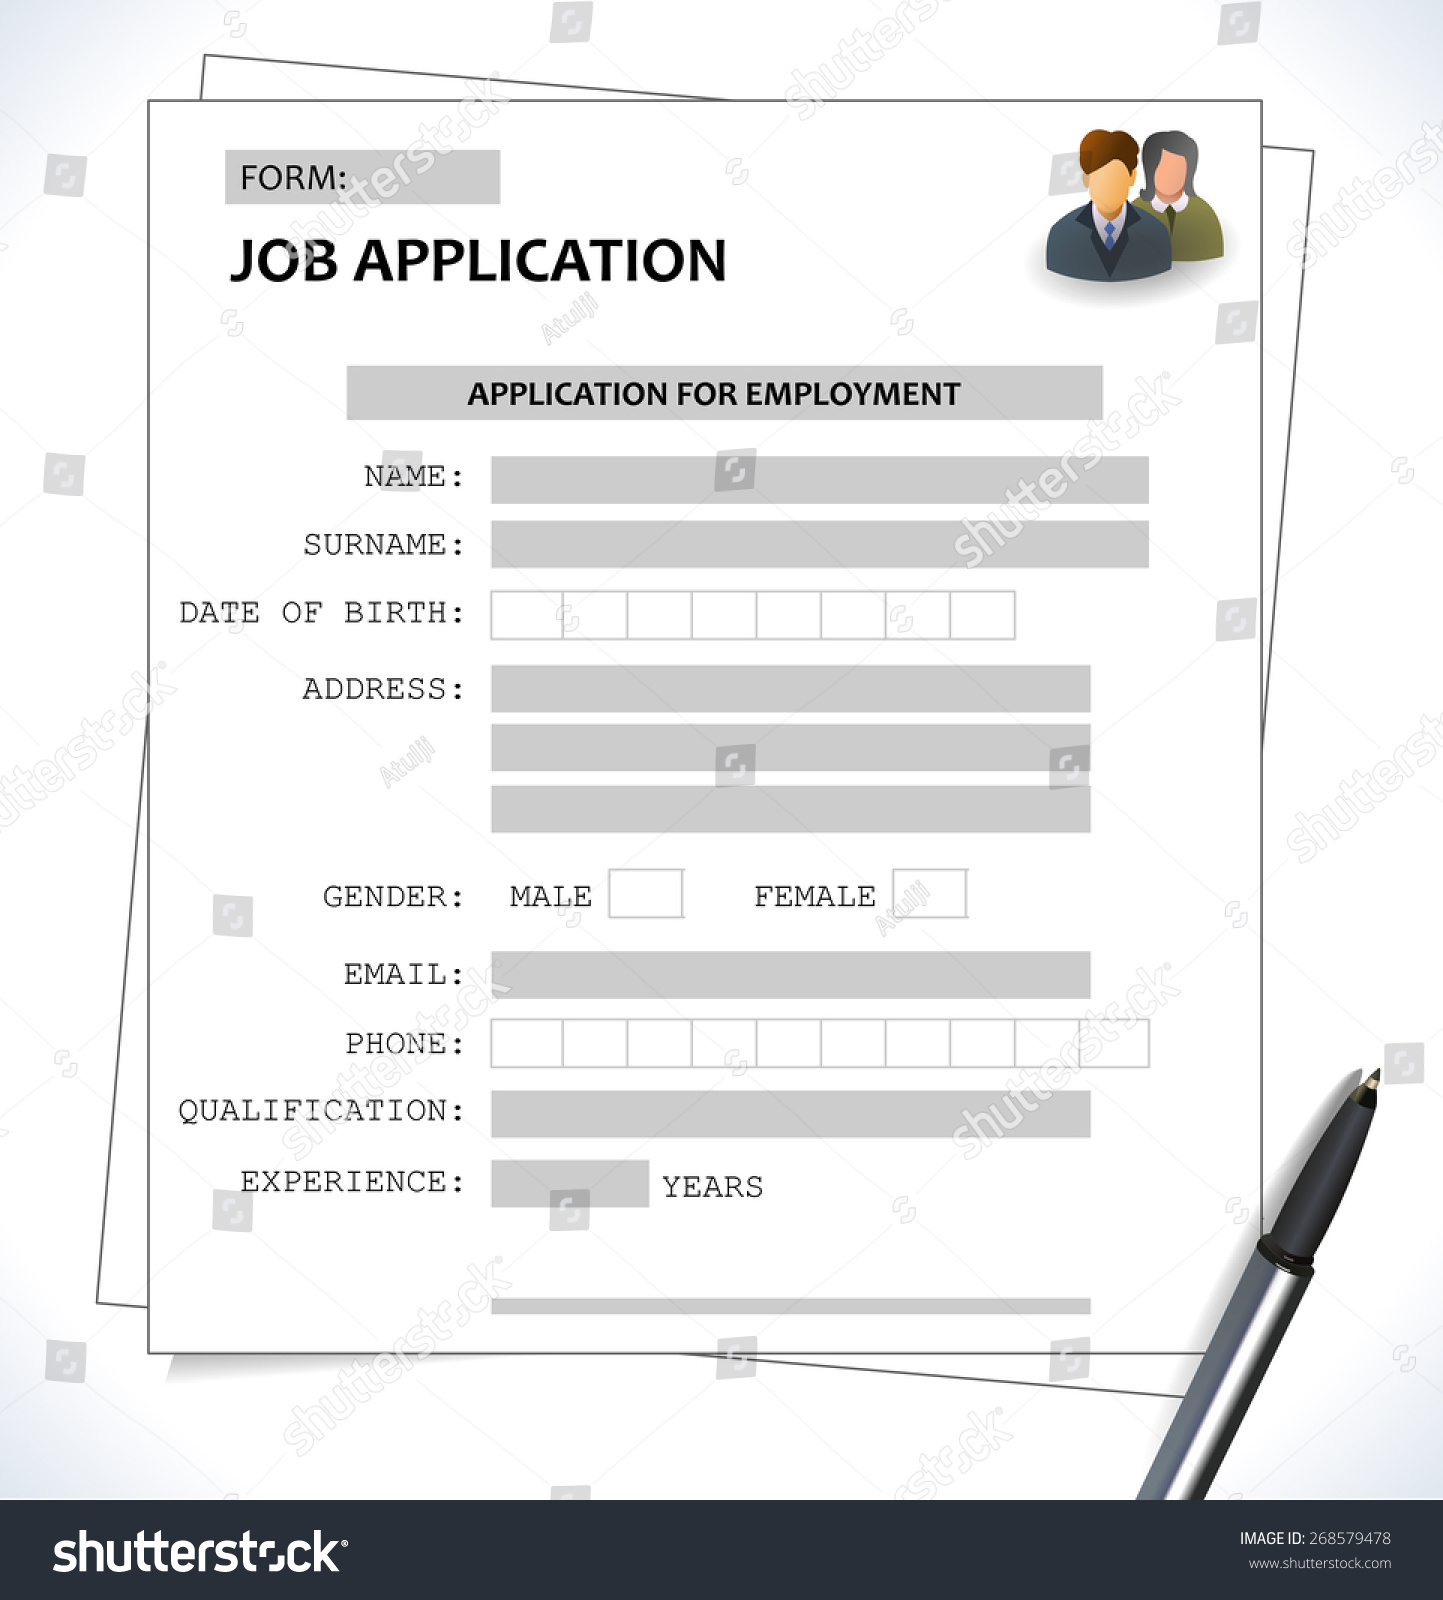 minimalist cv resume template job application stock vector royalty free image of for form Resume Image Of Resume For Job Application